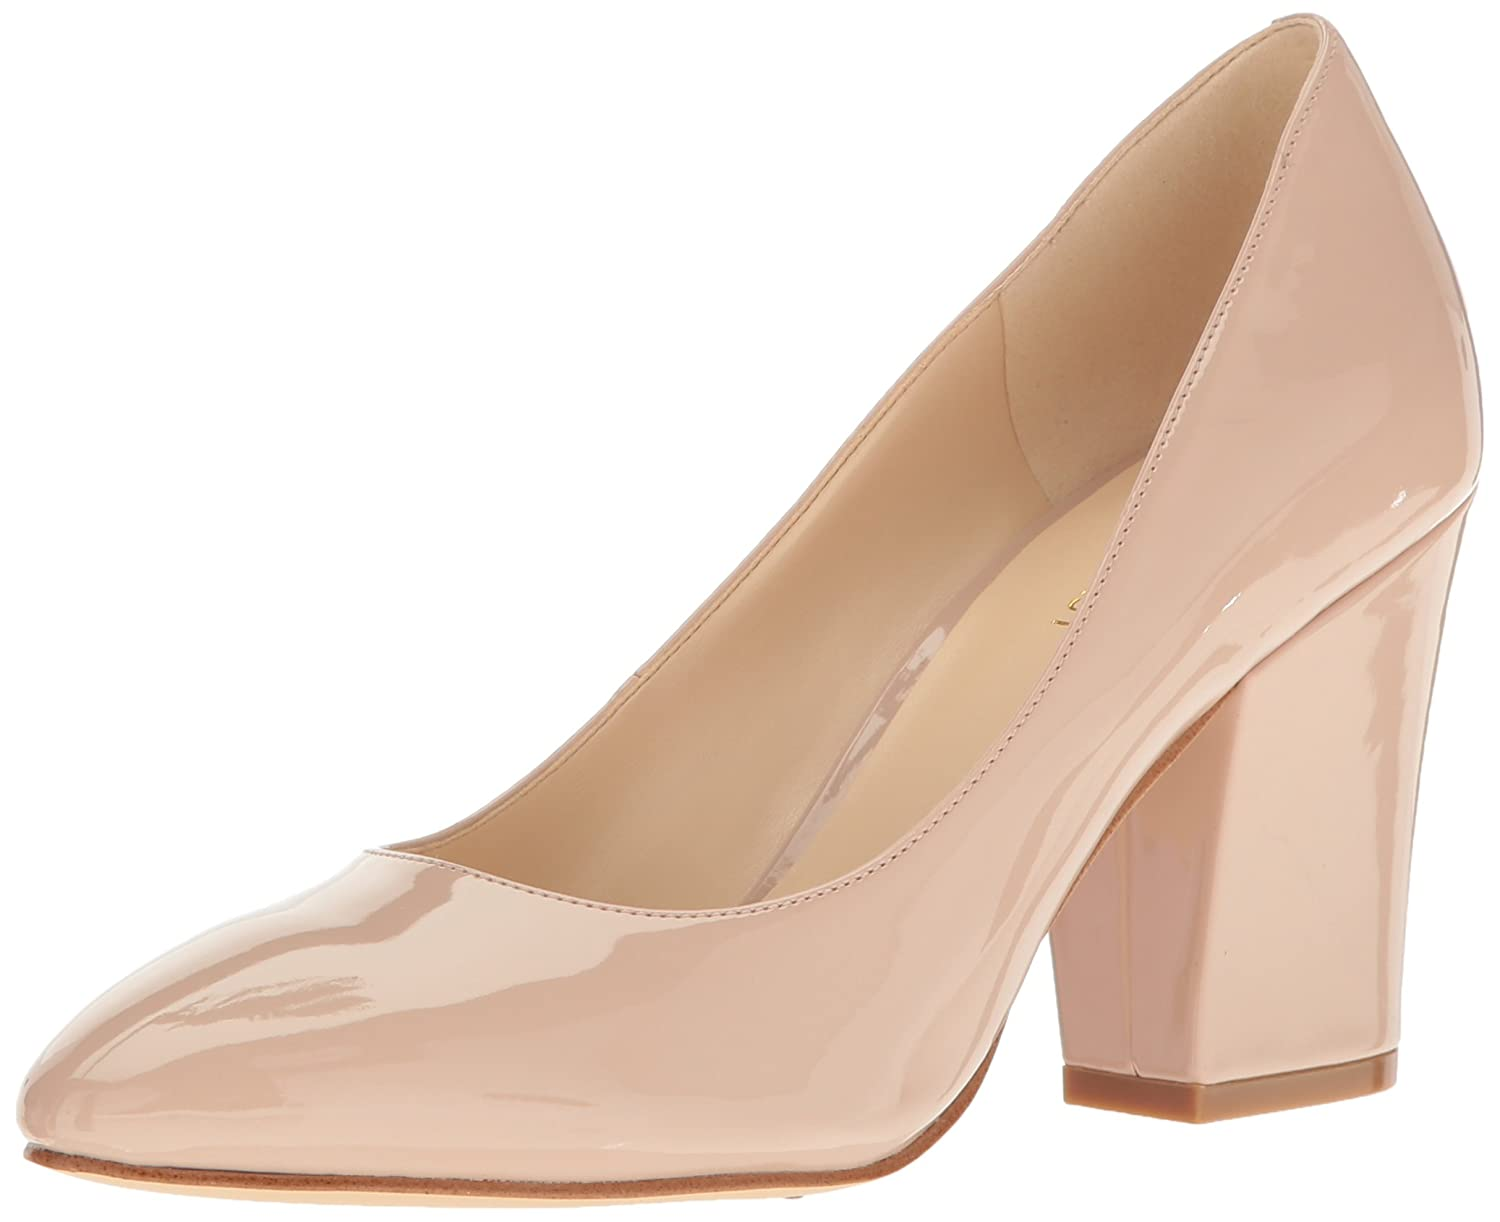 Nine West Women's Scheila Patent Dress Pump B01NA68PRN 5.5 B(M) US|Natural